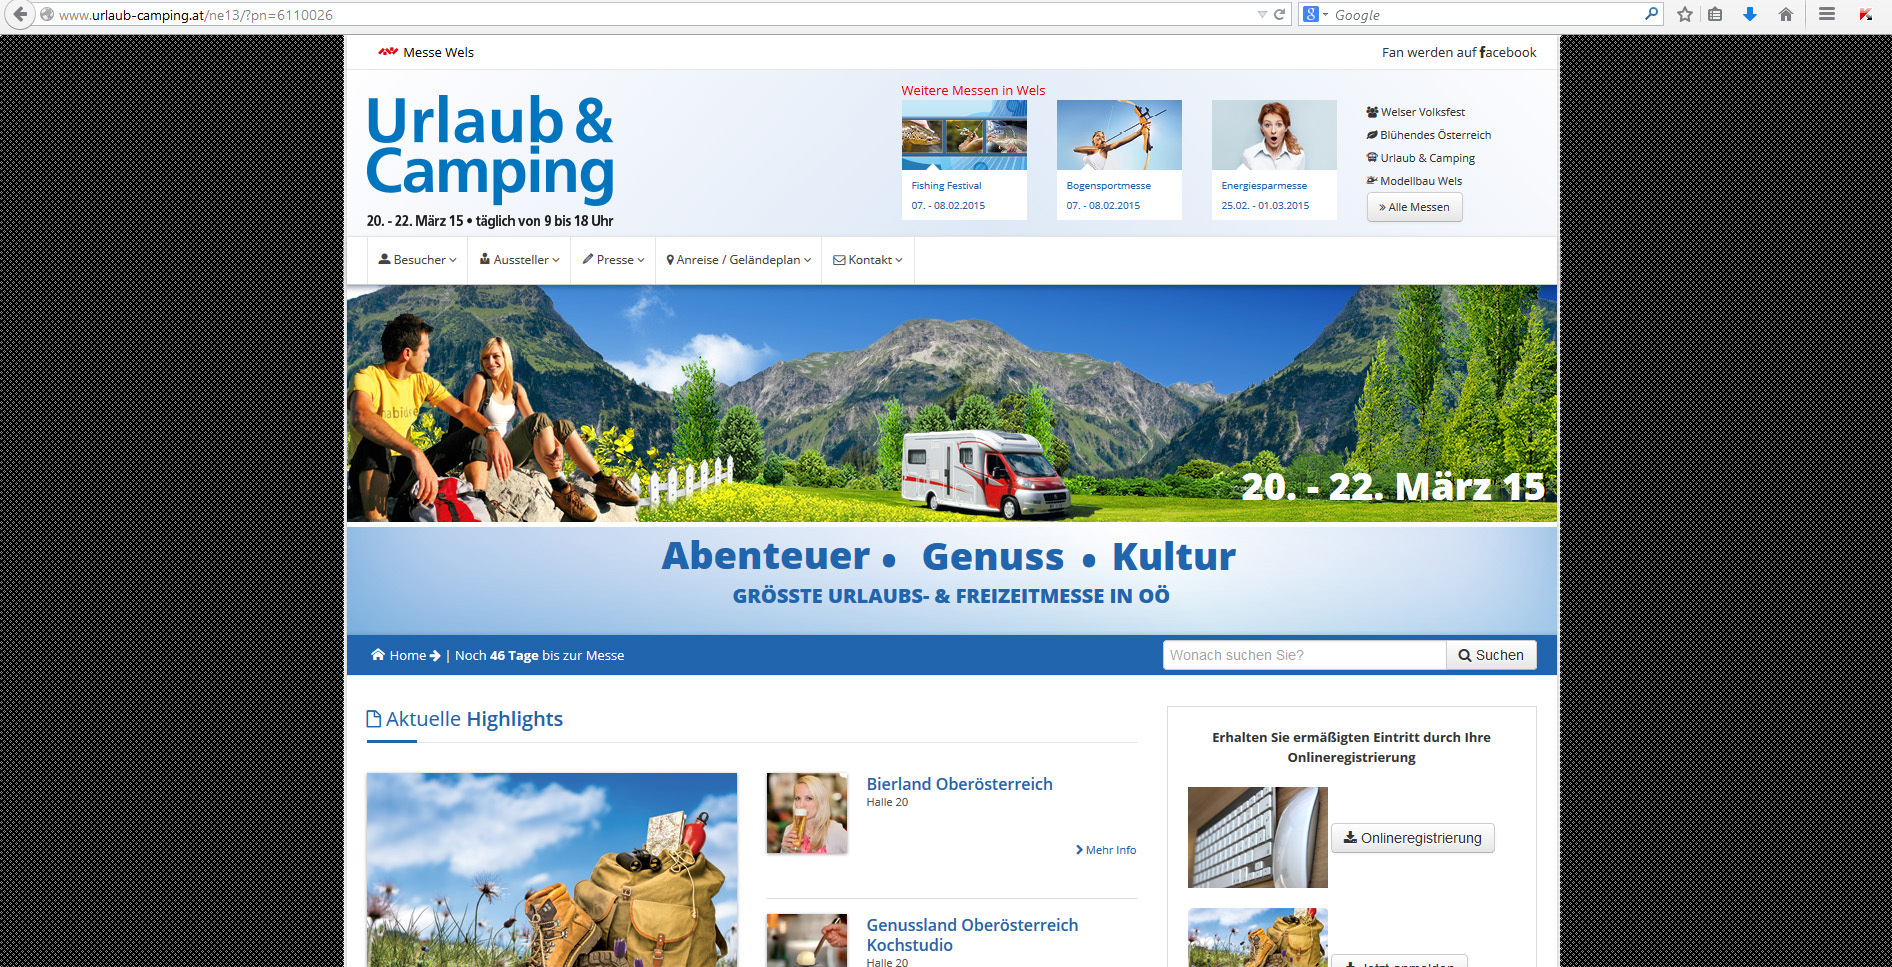 http://www.urlaub-camping.at